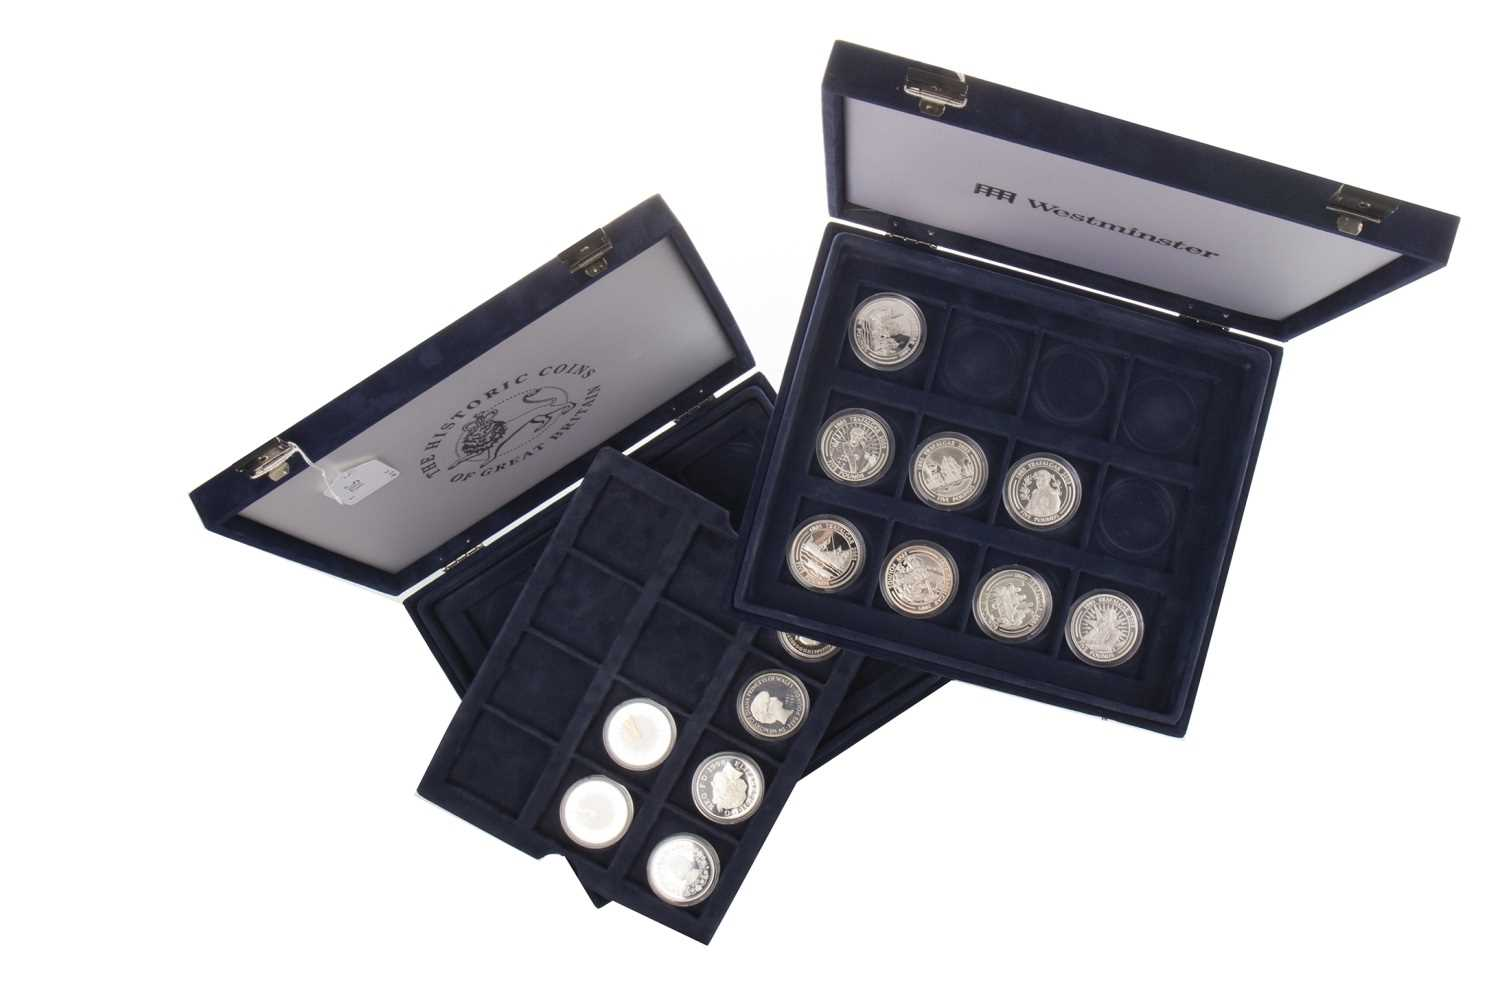 Lot 588-A COLLECTION OF SILVER PROOF AND OTHER COINS